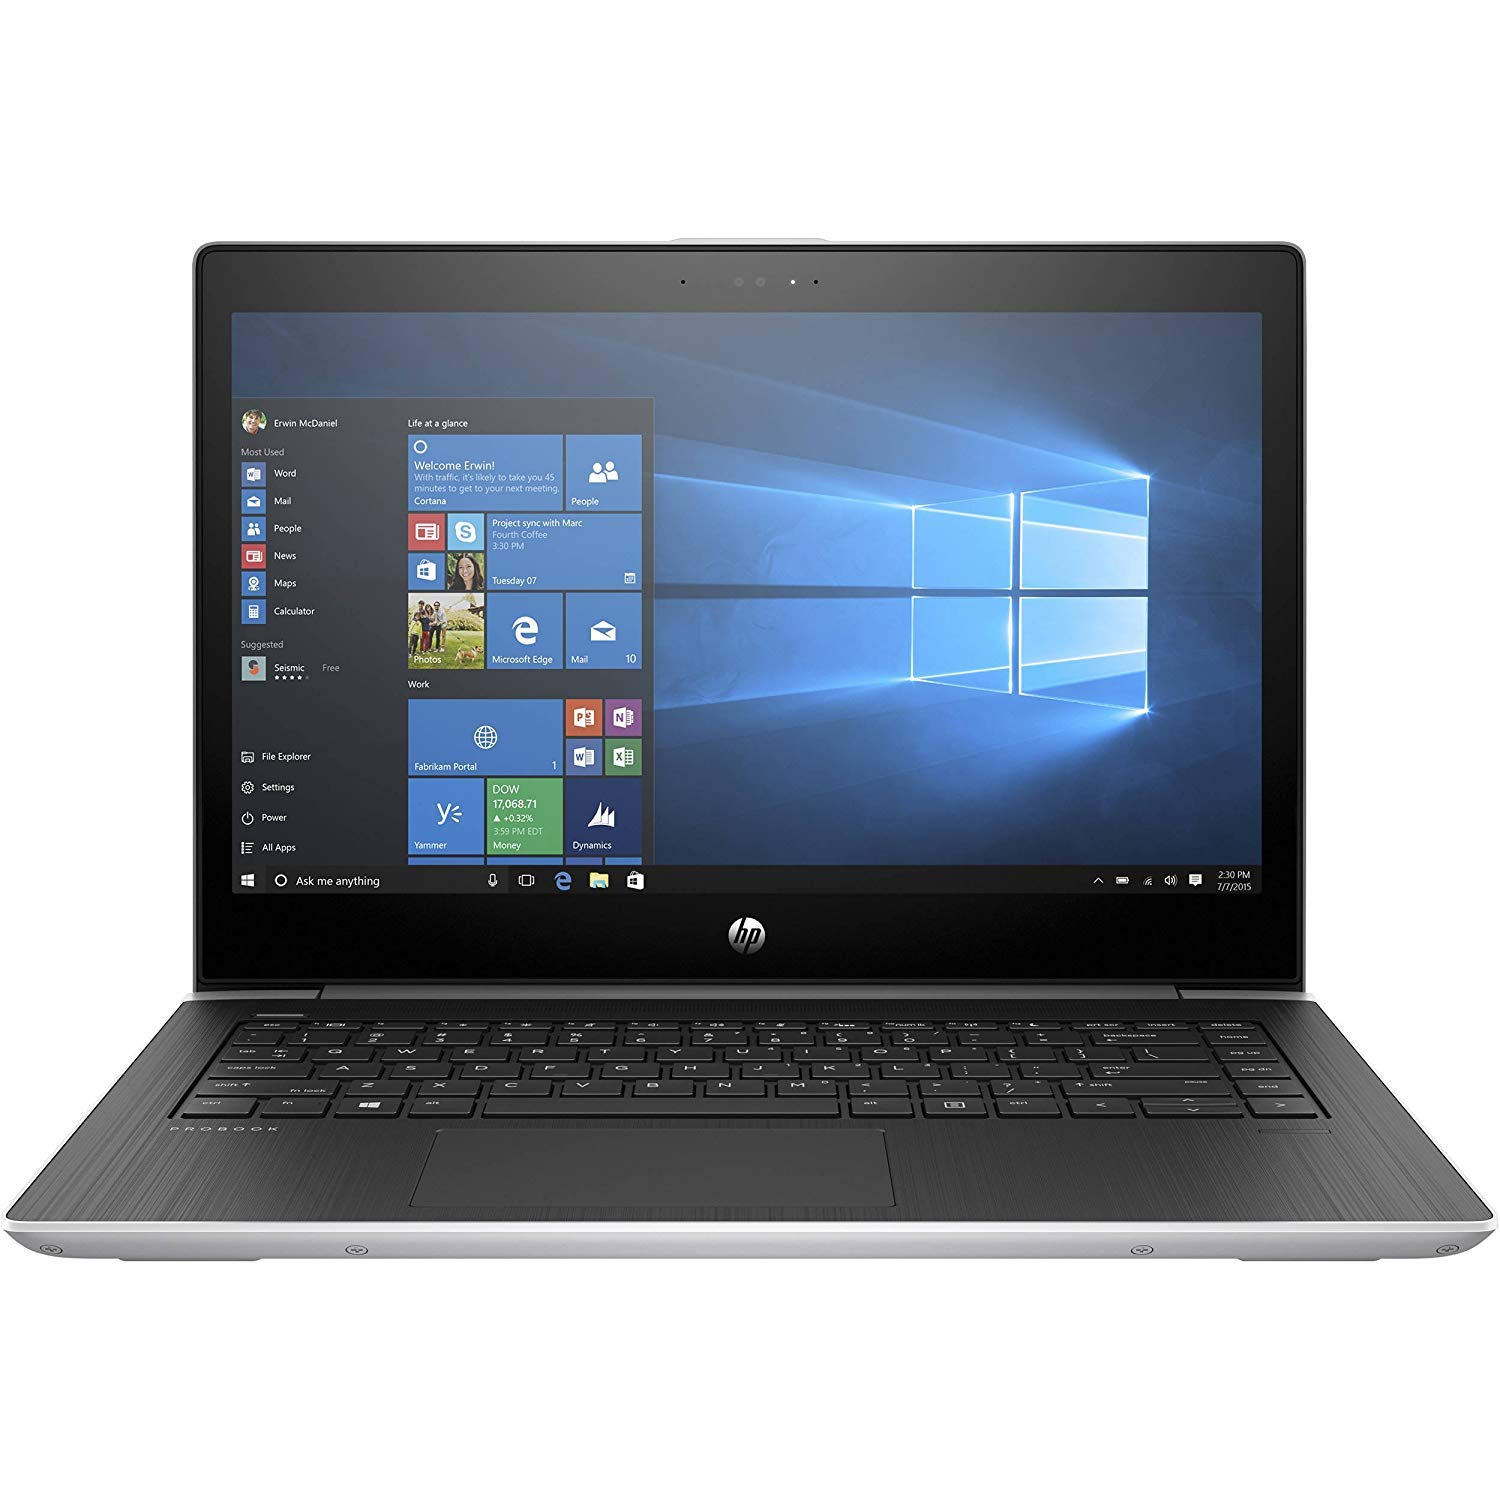 "HP Probook 440 G5 14"" Full HD FHD (1920x1080) Business Laptop (Intel Core i5-7200U, 8GB DDR4 RAM, 256GB PCIe NVMe M.2 SSD) Fingerprint, Backlit KB, Bluetooth, Type C, HDMI, VGA, Windows 10 Pro"